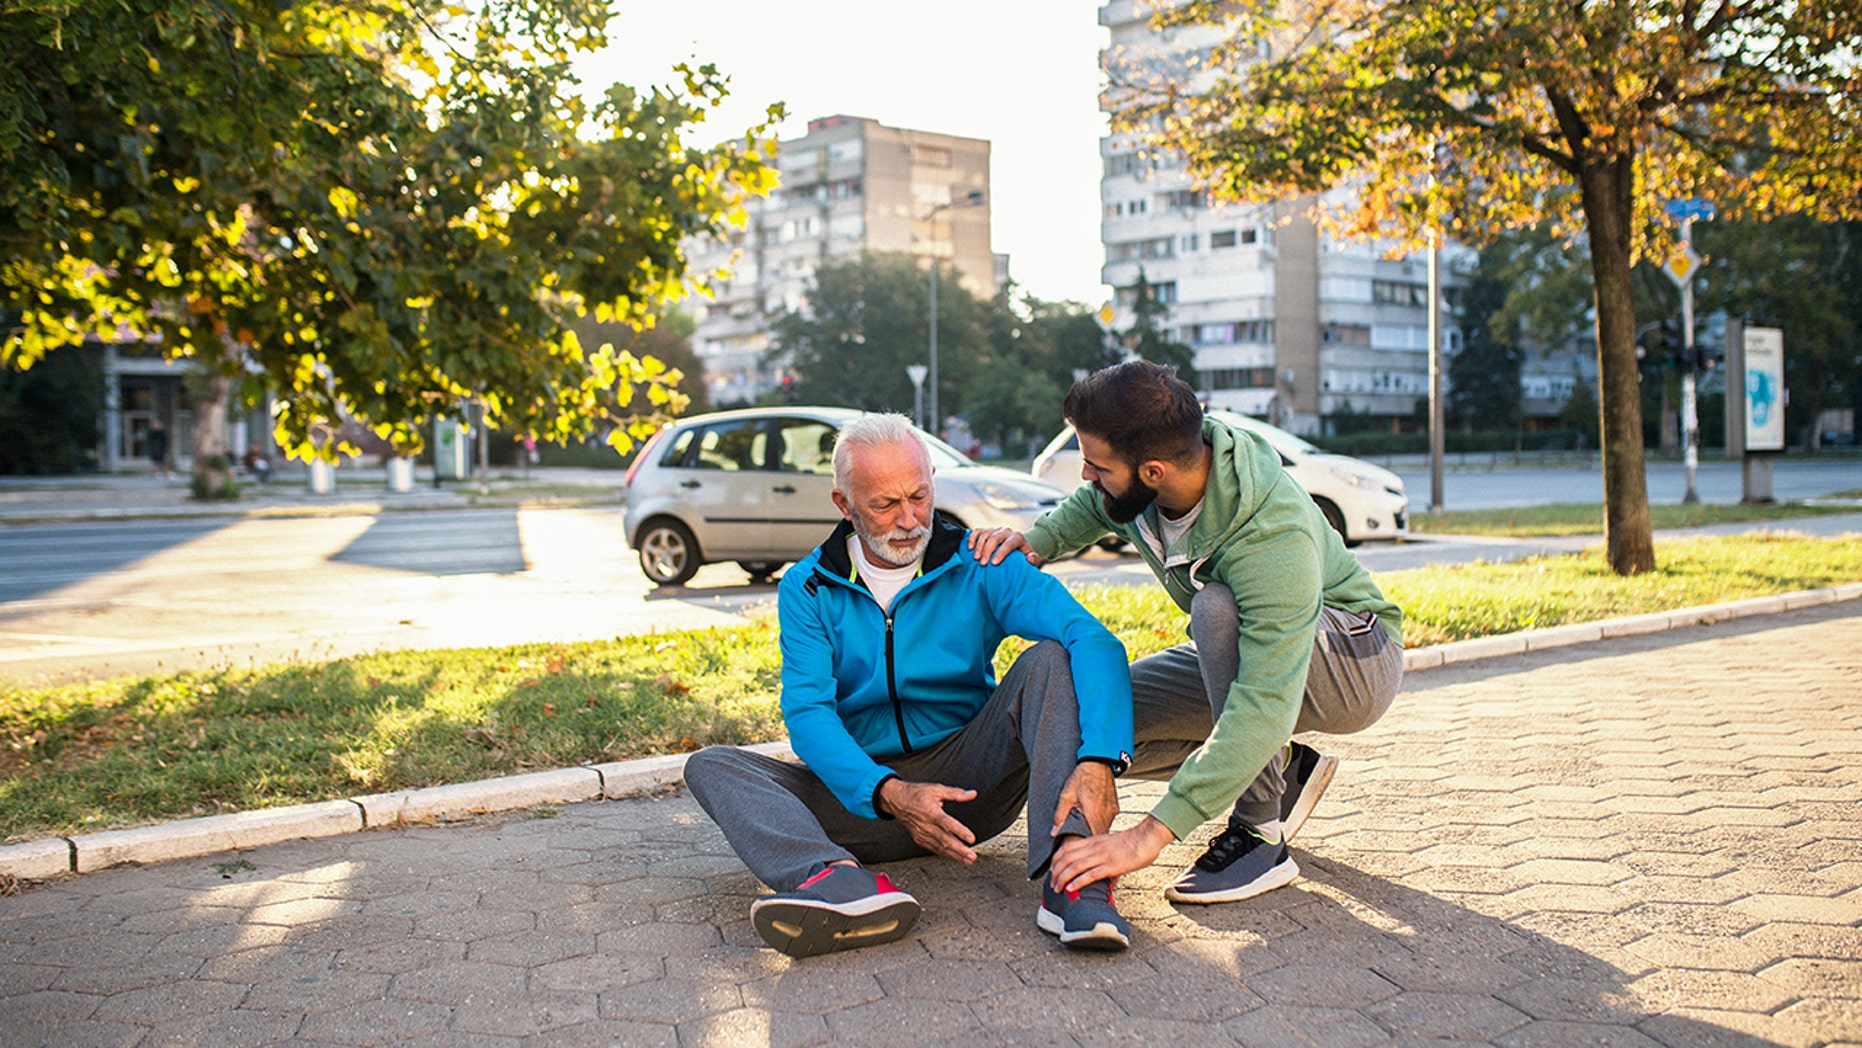 Son helping his father to stand up after his fall while jogging outdoors in city street.